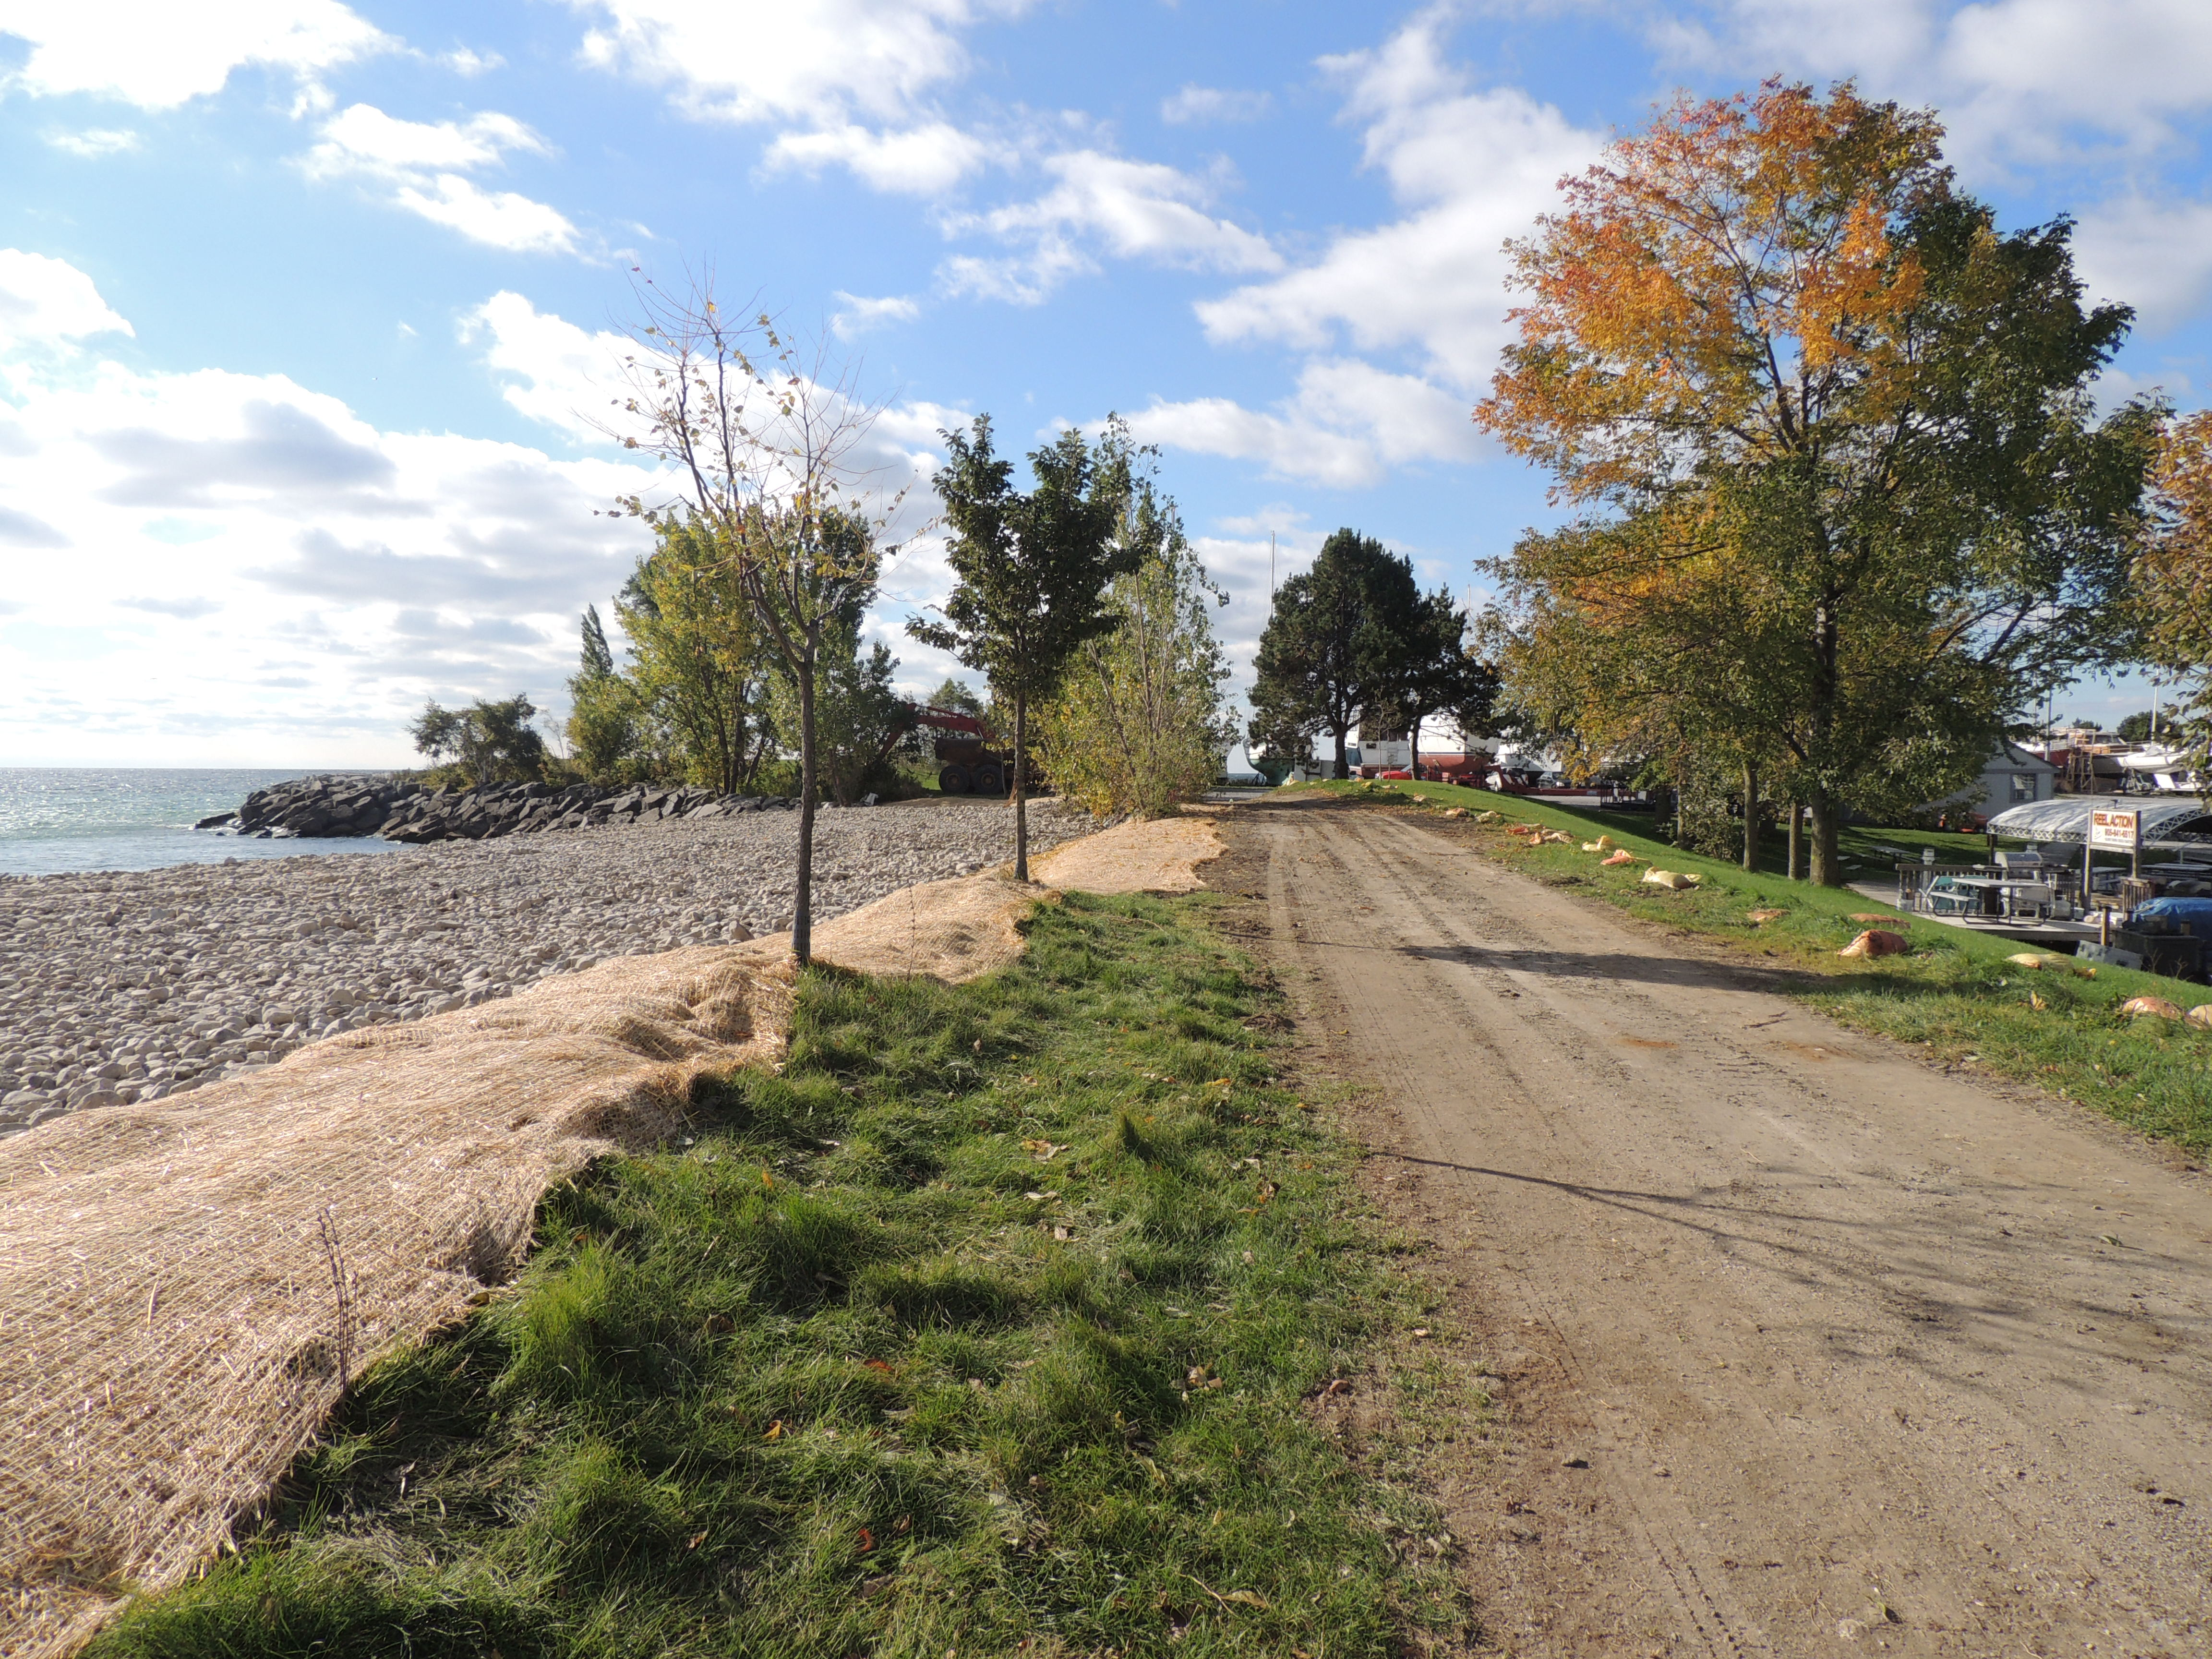 Open access road and newly-seeded area covered with straw matting. Source: TRCA, 2018.